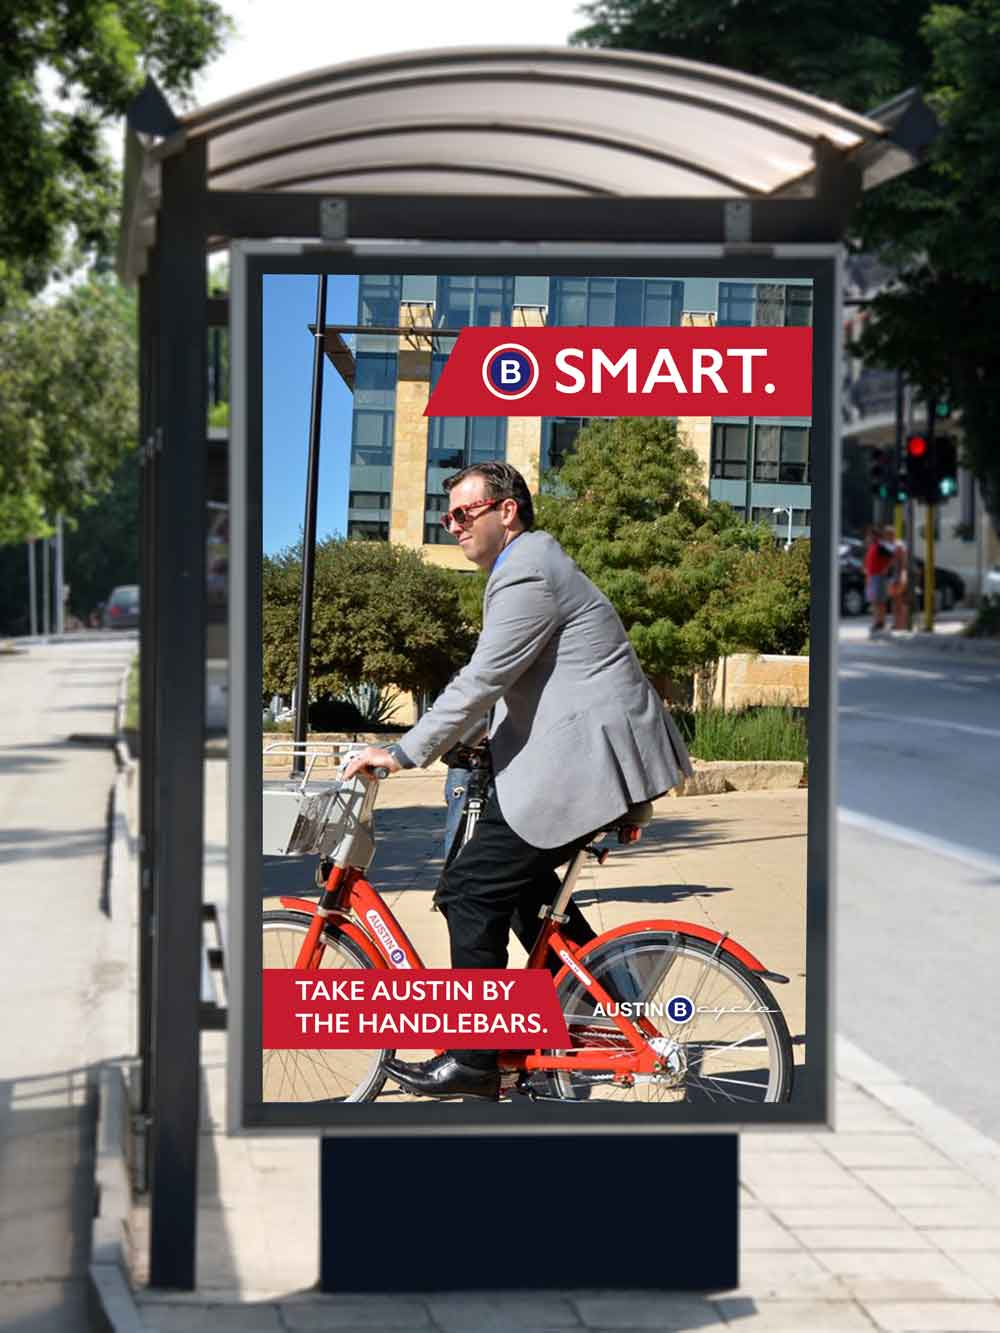 Bus-Stop-Advertisement-B-Smart.png